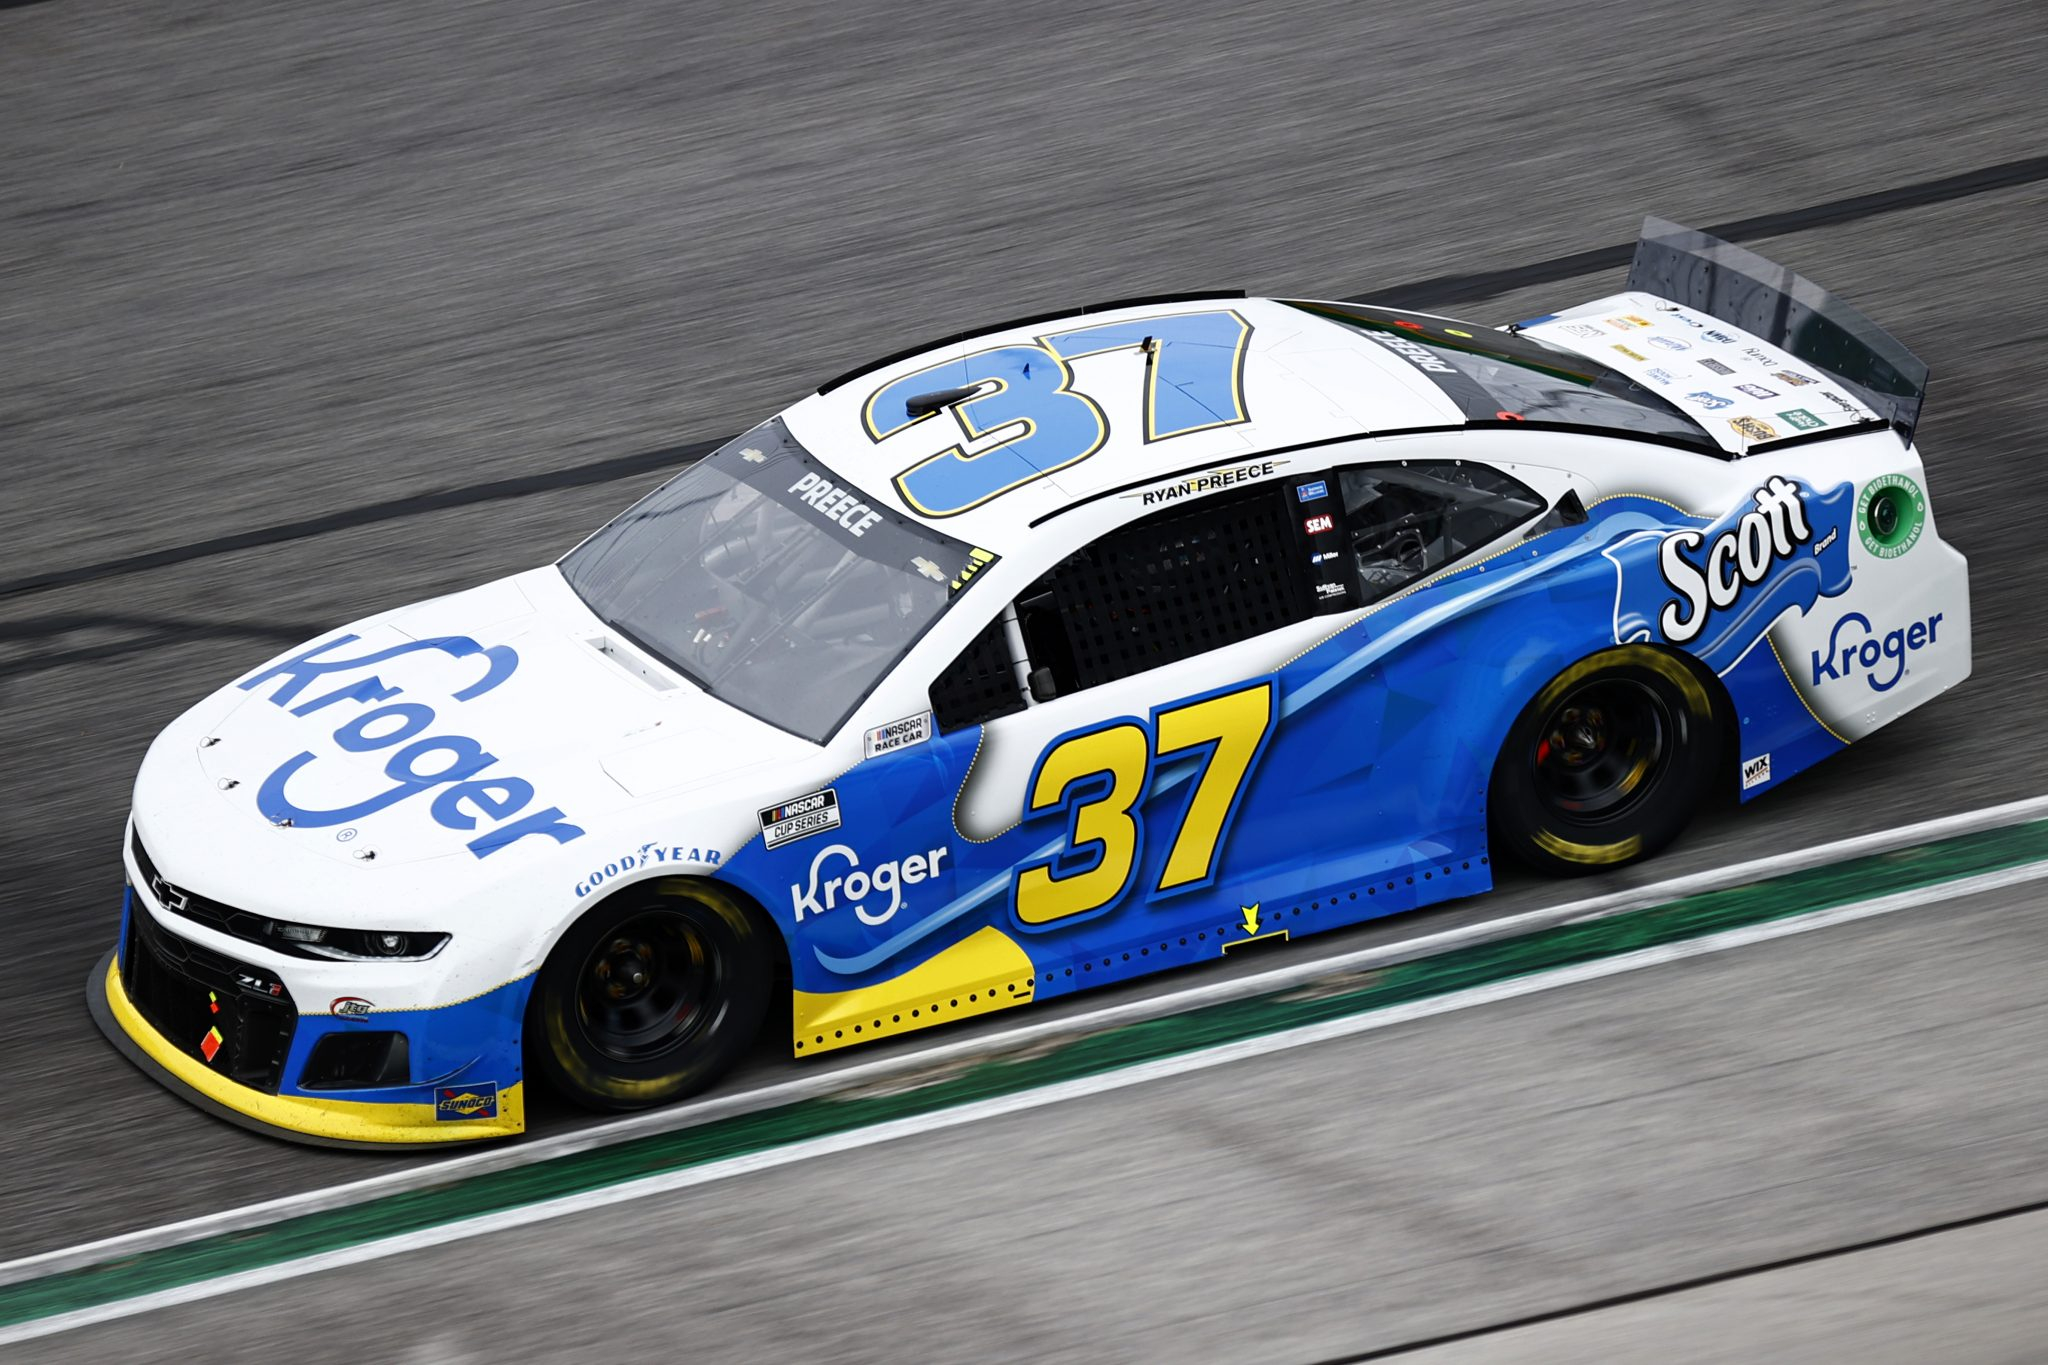 HAMPTON, GEORGIA - JULY 11: Ryan Preece, driver of the #37 Kroger/Scott Brand Chevrolet, drives during the NASCAR Cup Series Quaker State 400 presented by Walmart at Atlanta Motor Speedway on July 11, 2021 in Hampton, Georgia. (Photo by Jared C. Tilton/Getty Images) | Getty Images